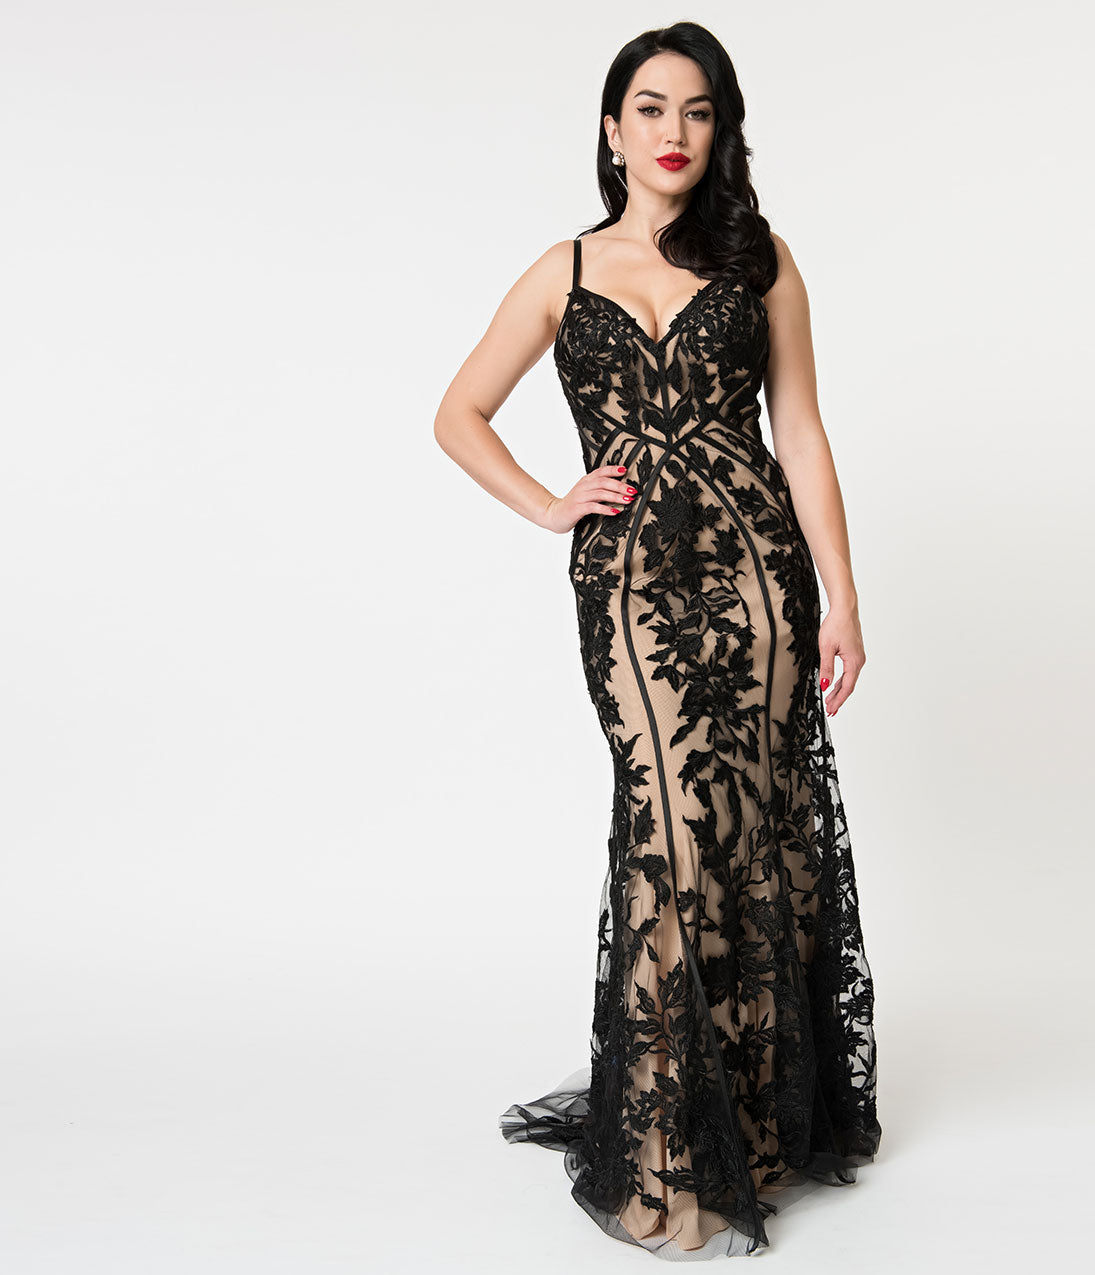 1930s Evening Dresses | Old Hollywood Dress Beige  Black Embroidered Lace Sexy Fitted Long Dress $398.00 AT vintagedancer.com